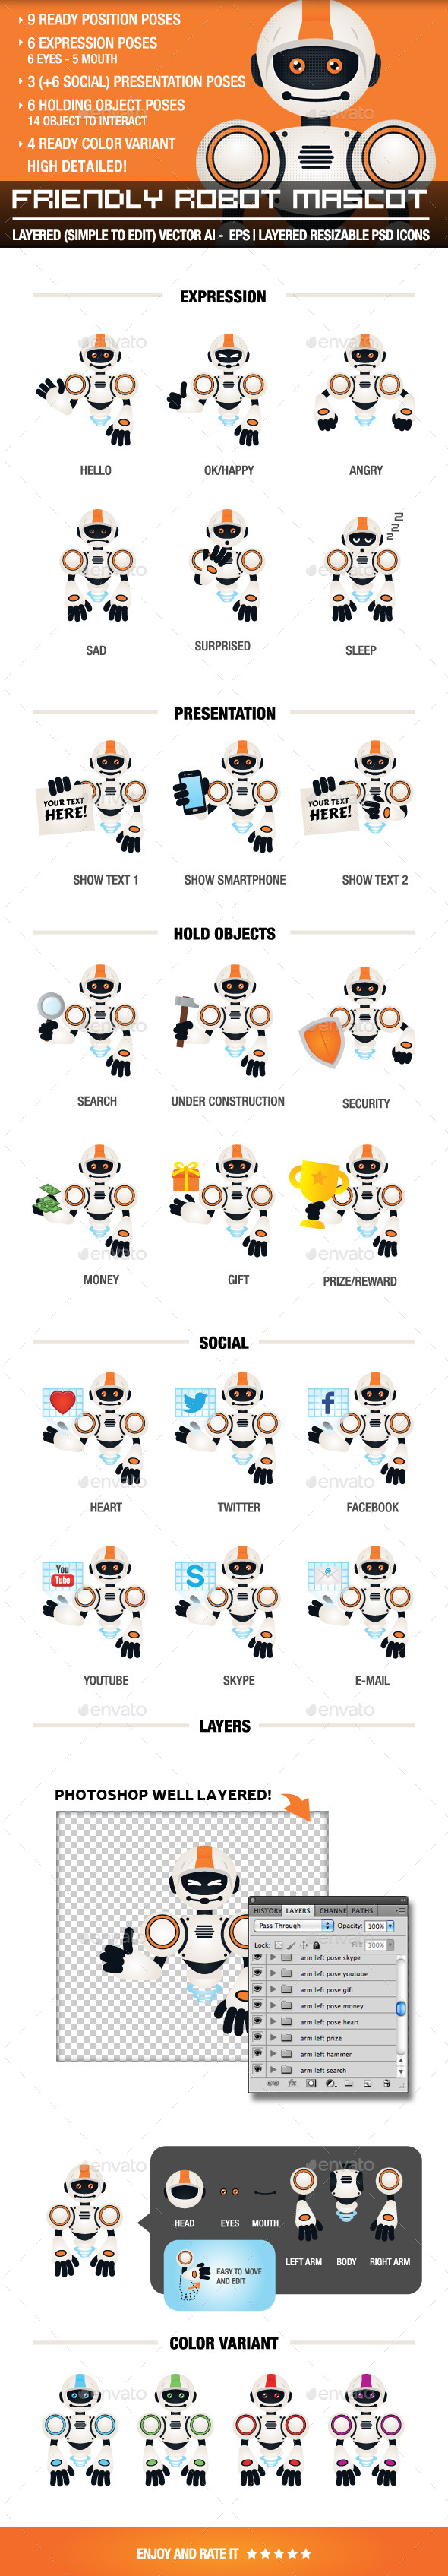 GraphicRiver Friendly Robot Mascot 10293882